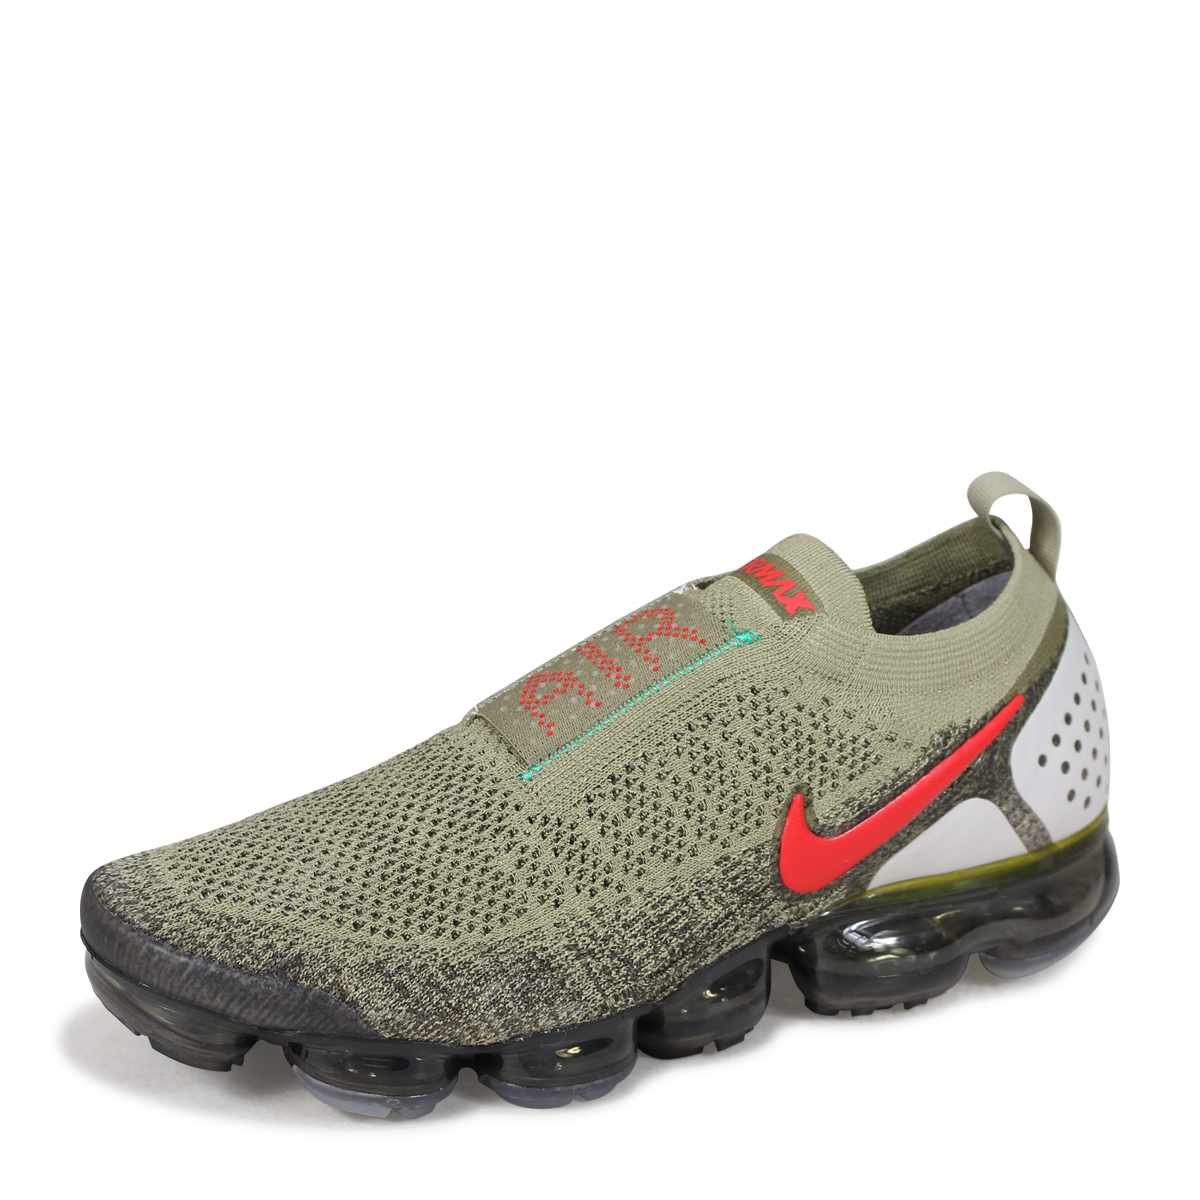 2258605b095e9 NIKE AIR VAPORMAX FK MOC 2 Nike air vapor max fried food knit 2 sneakers  men AH7006-200 olive  load planned Shinnyu load in reservation product 6 15  ...